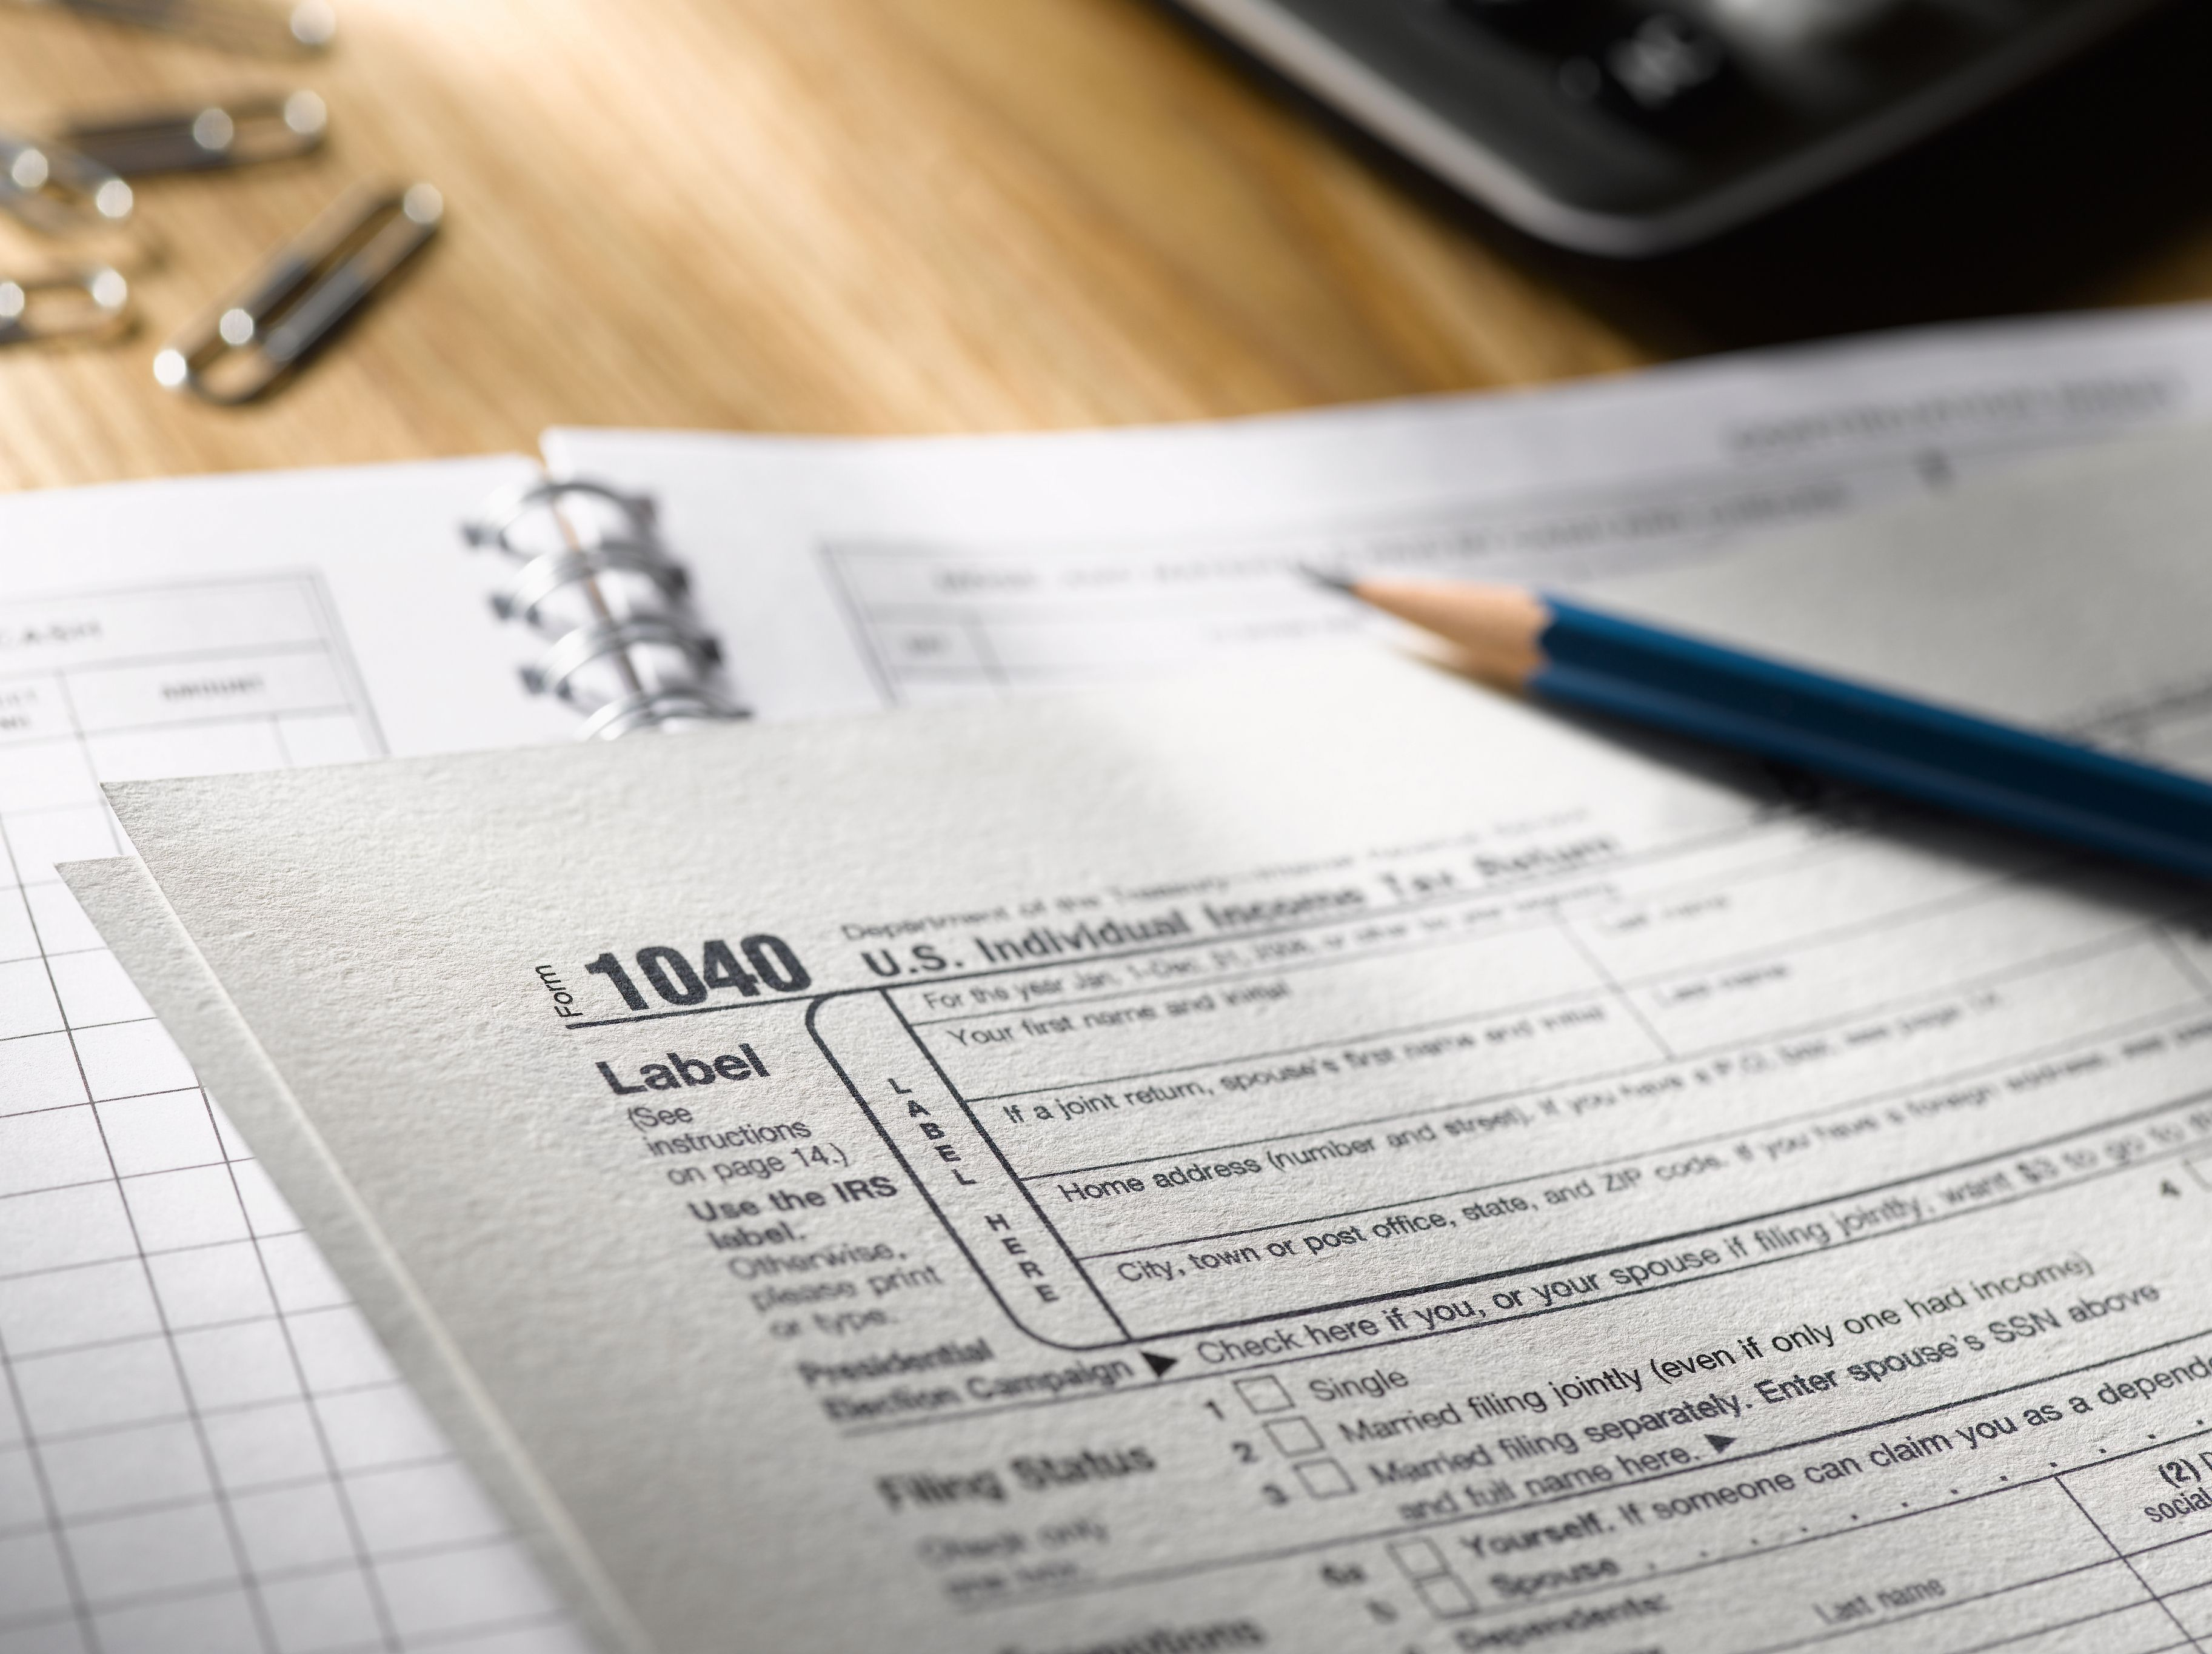 Tax Return 2017 Changes on Form 1040 and Schedule A